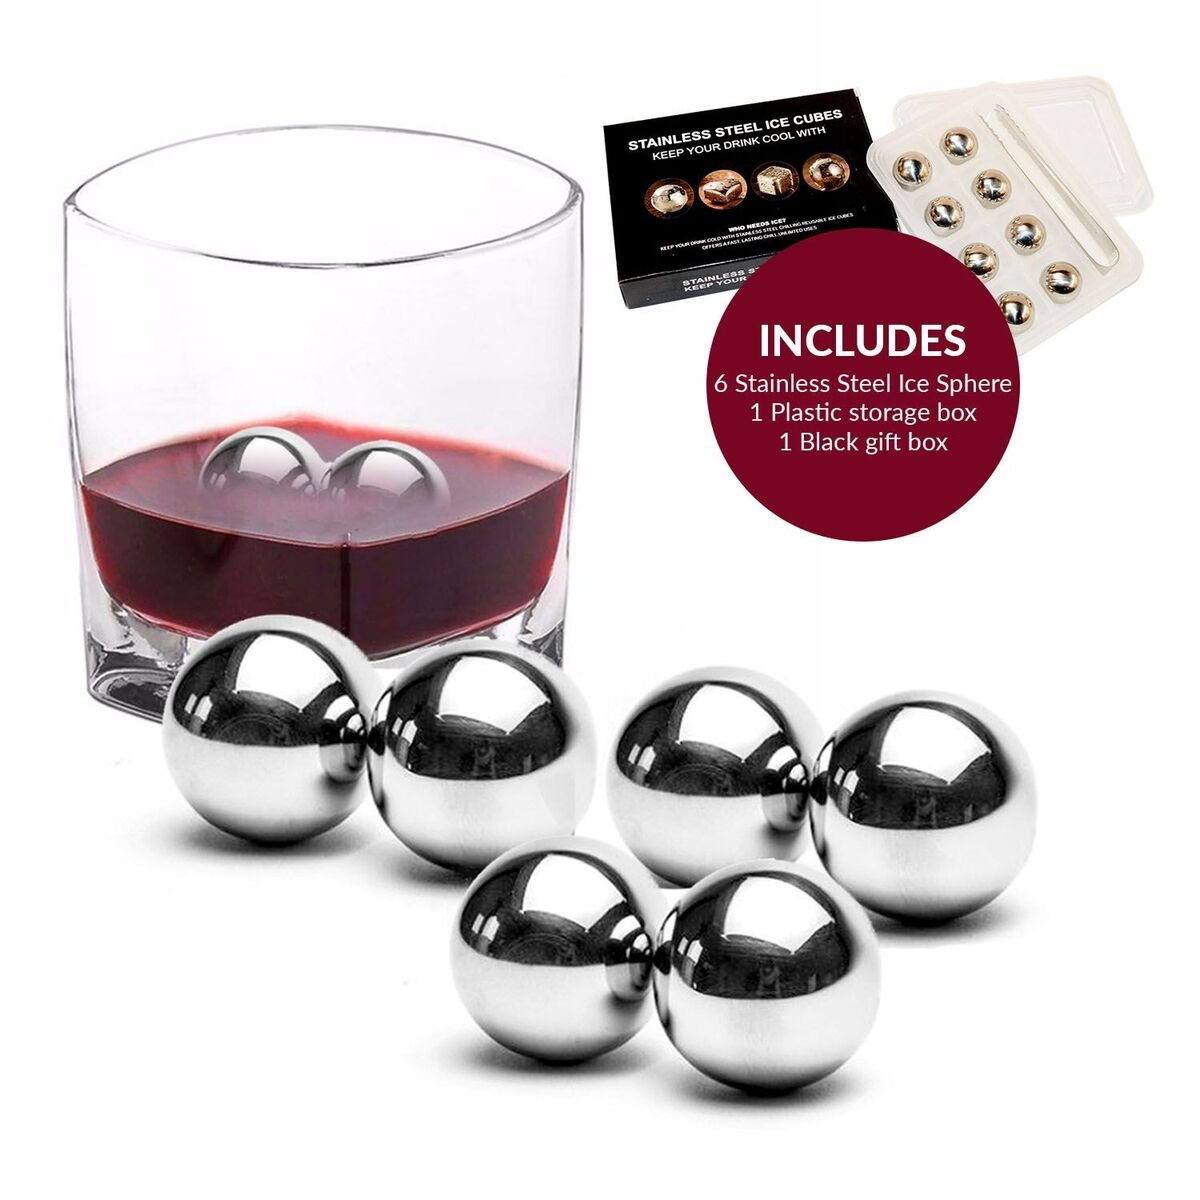 Stainless Steel Whiskey Stones/Rocks-Perfect for Whiskey, Wine, Beer or other drinks Whiskey Cubes Scotch Stones Set whiskey ice cube stones Cold Stone Rocks for ALL Drinks-Long lasting …